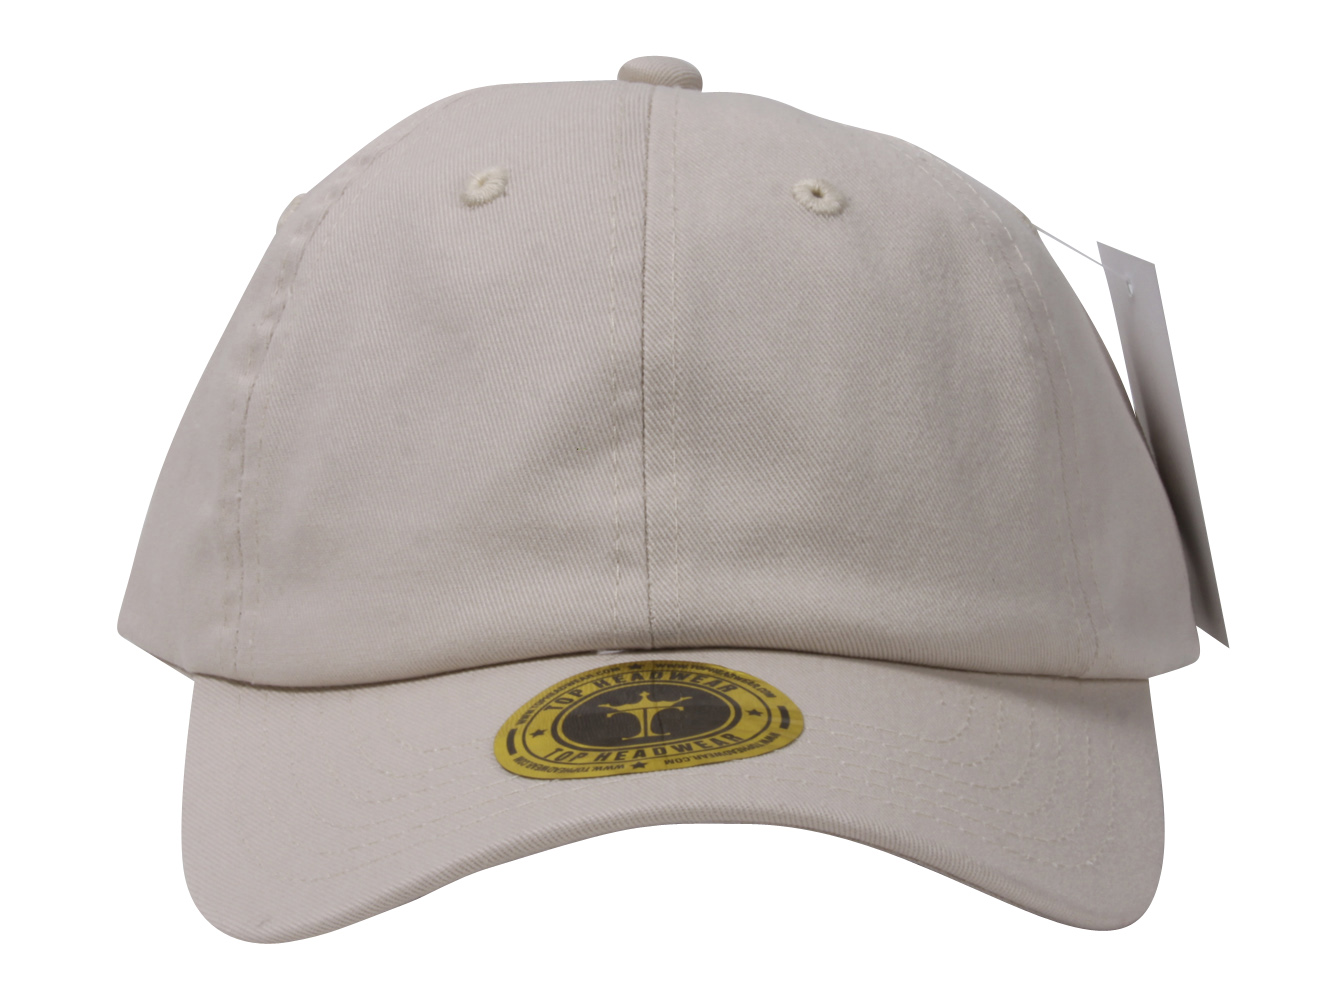 Low-Profile-Dyed-Cotton-Twill-Cap thumbnail 21